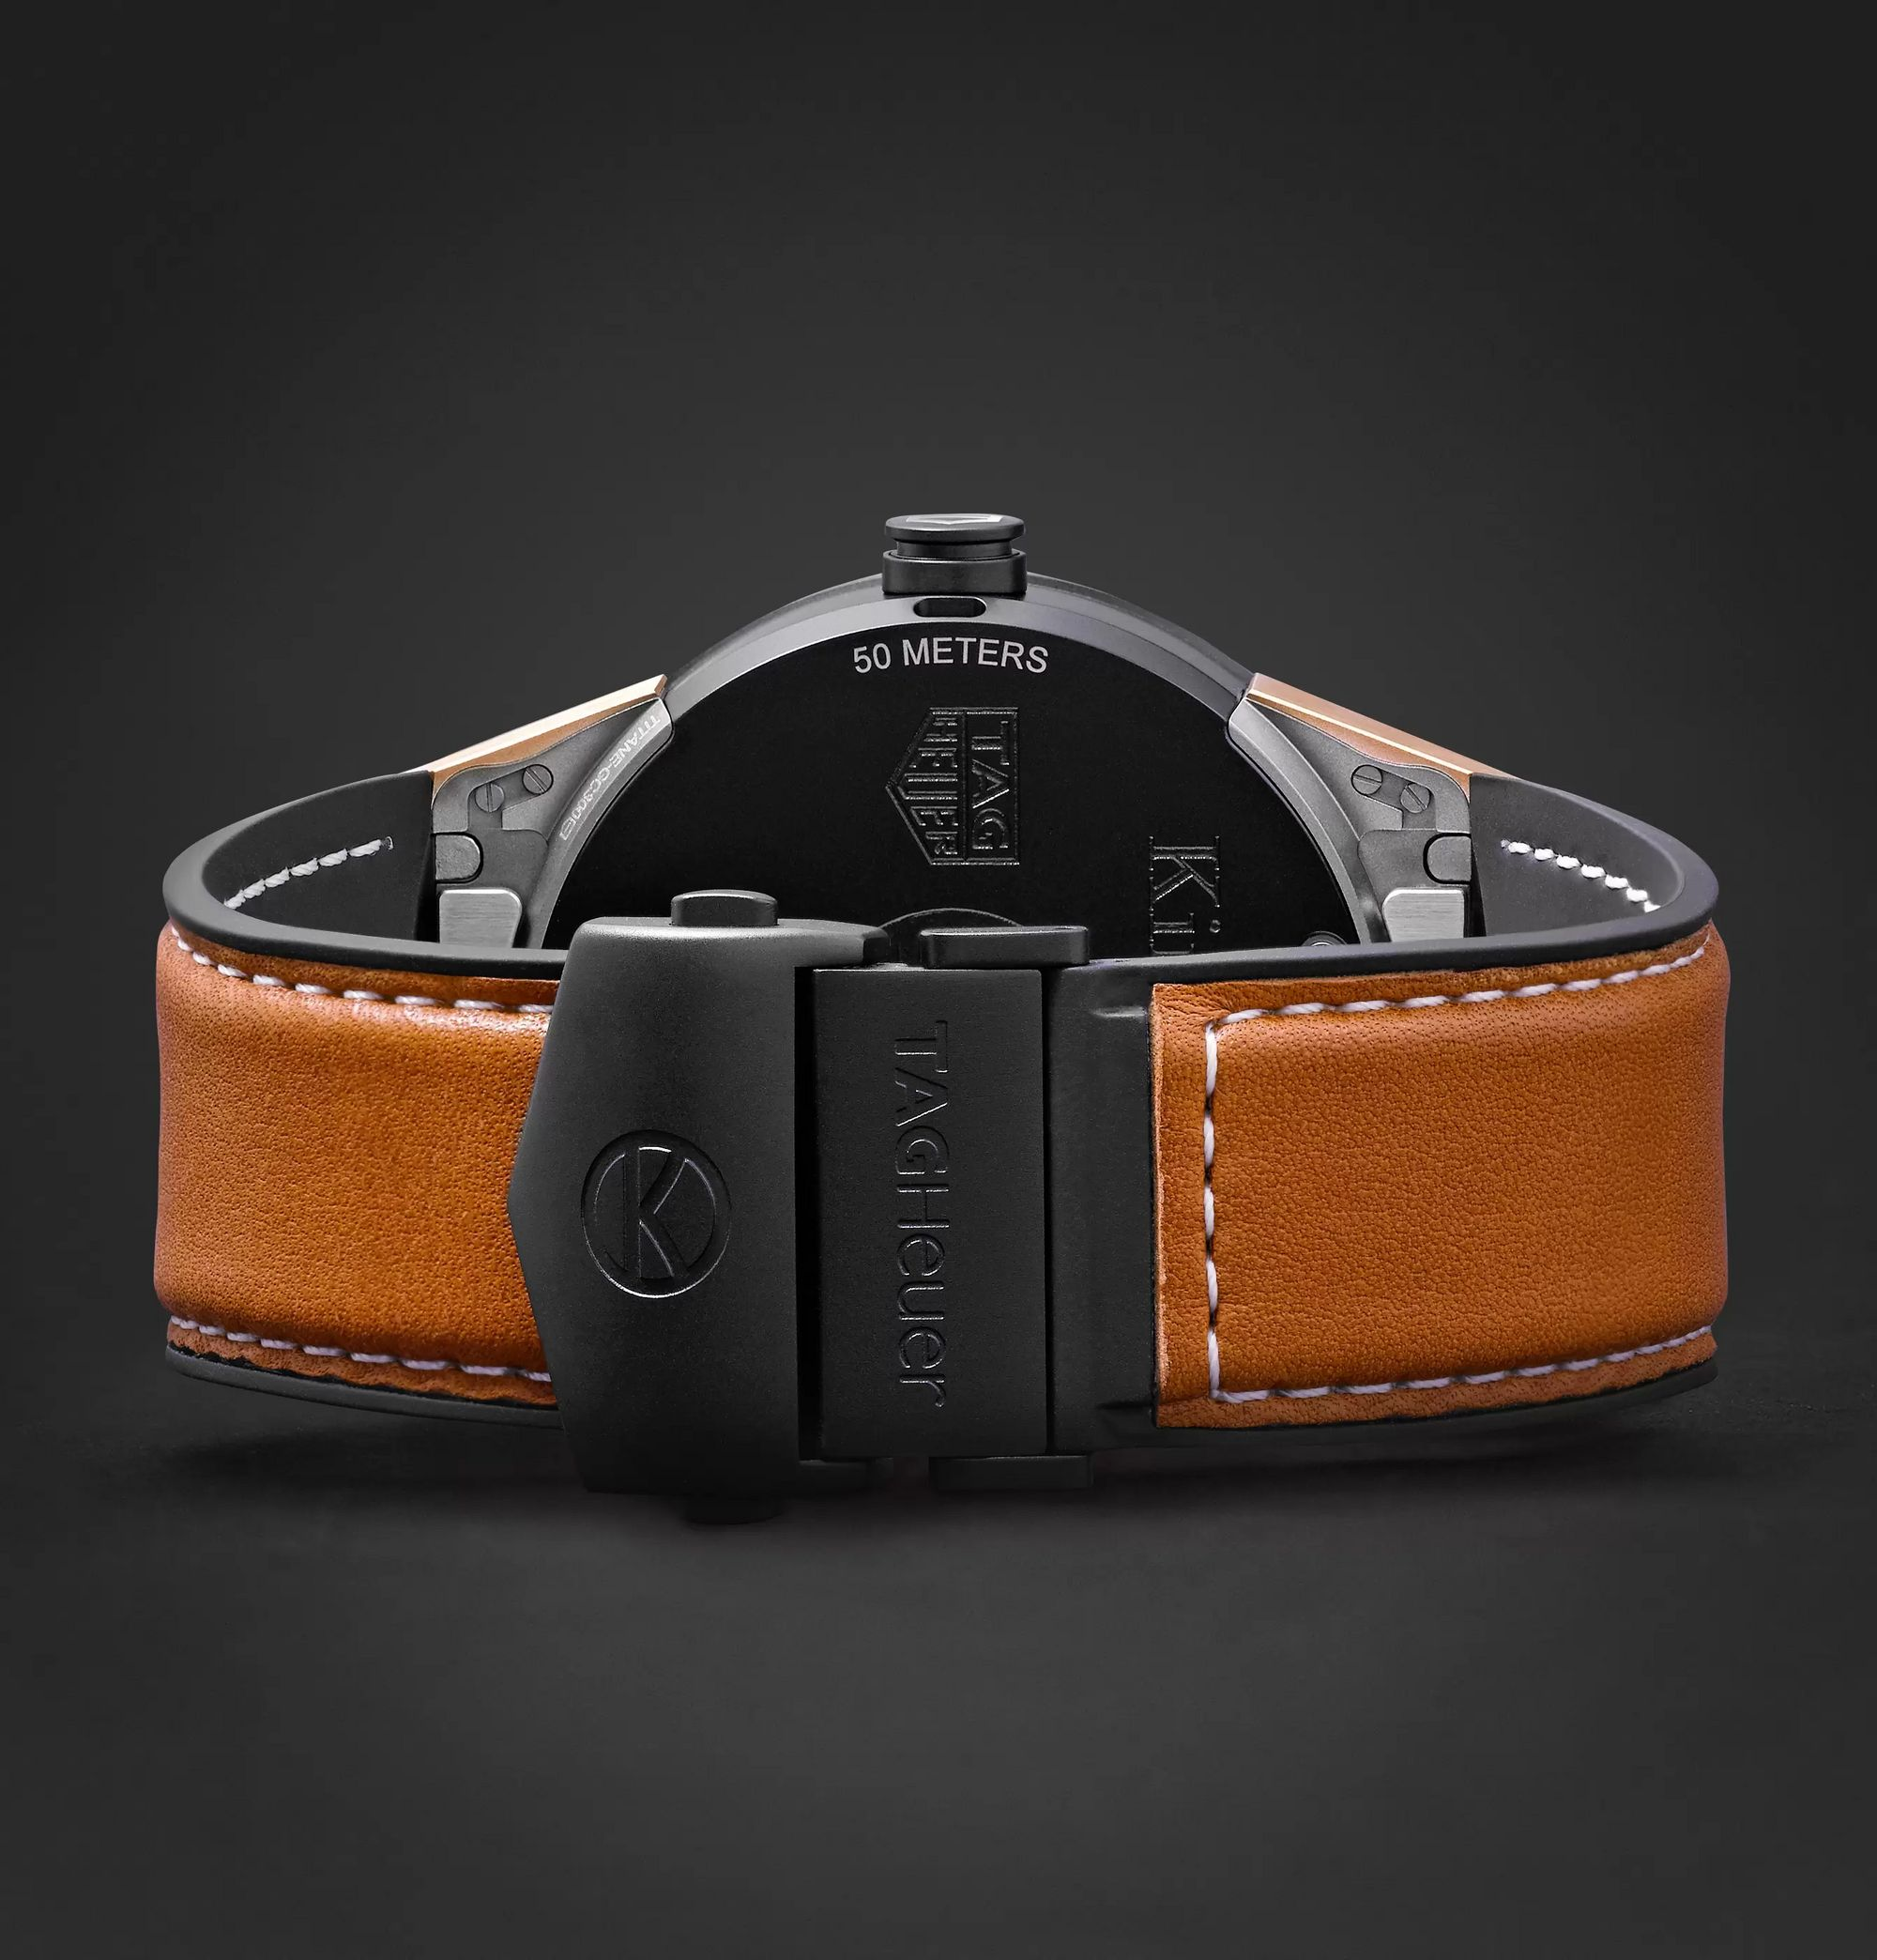 Kingsman x TAG Heuer + TAG Heuer Connected Modular 45mm Ceramic and Leather Smart Watch, Ref. No. SBF8A8023.32EB0103